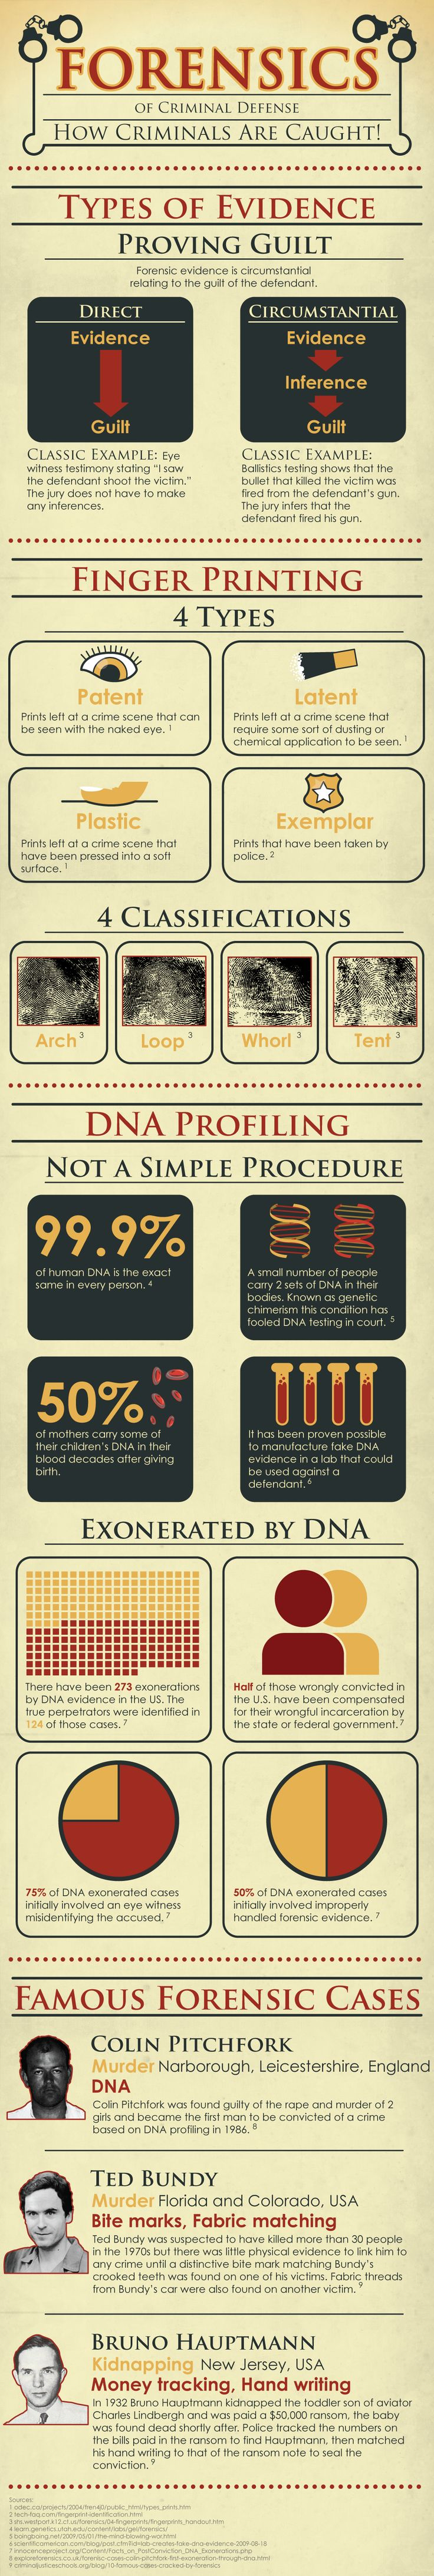 Forensic evidence in criminal cases american lawyers infographic